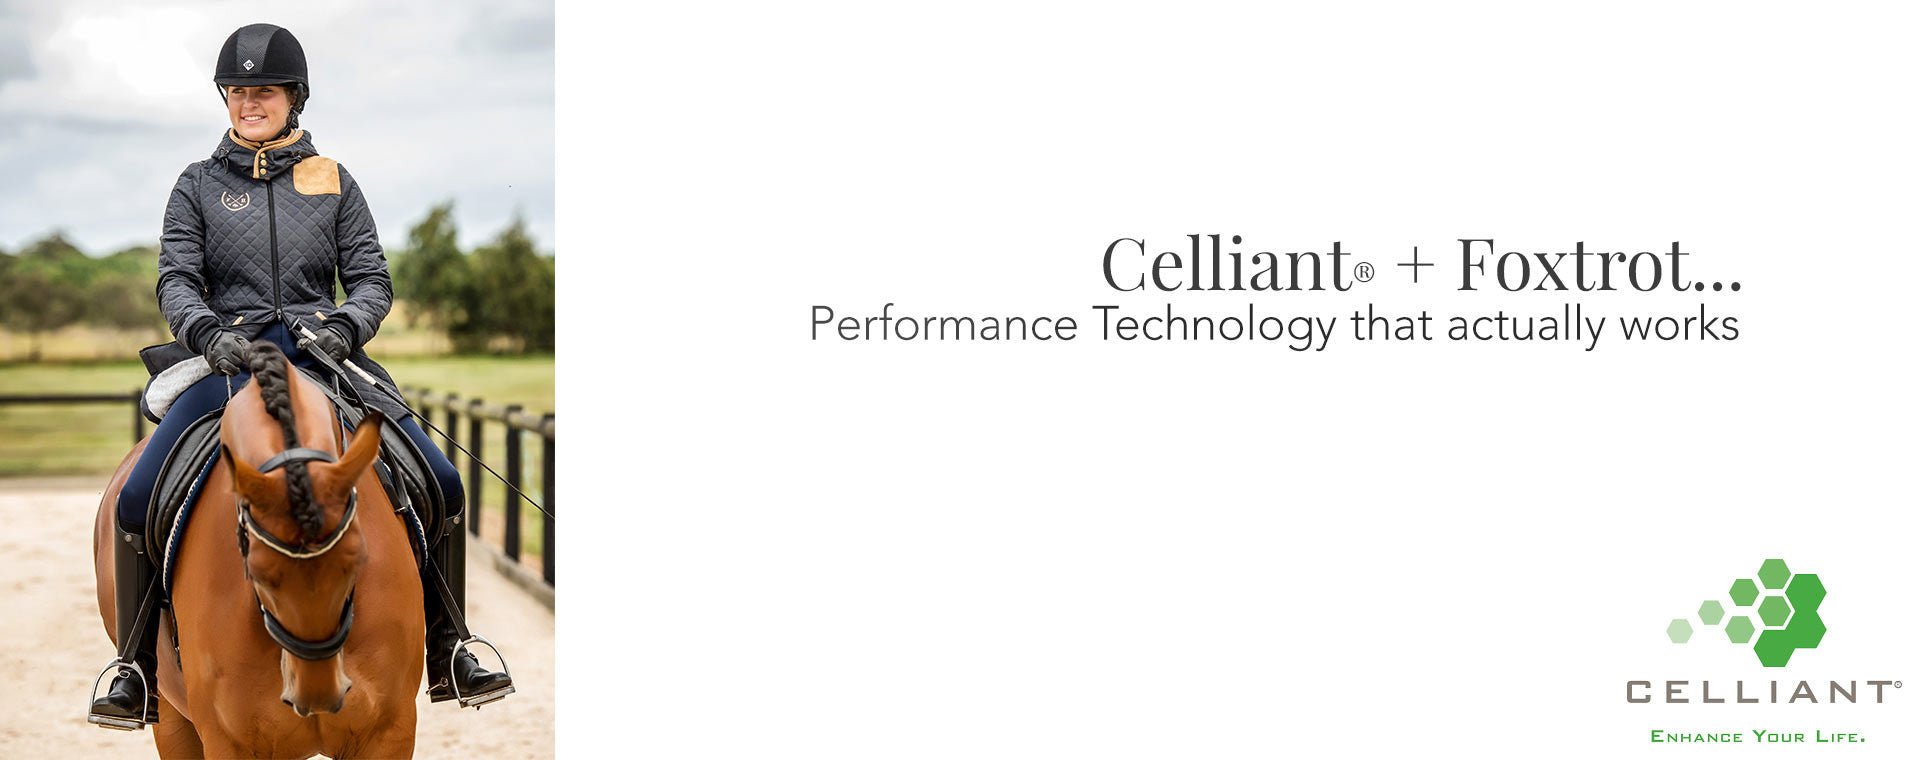 Using Infrared technology to enhance your horse riding Celliant + Foxtrot